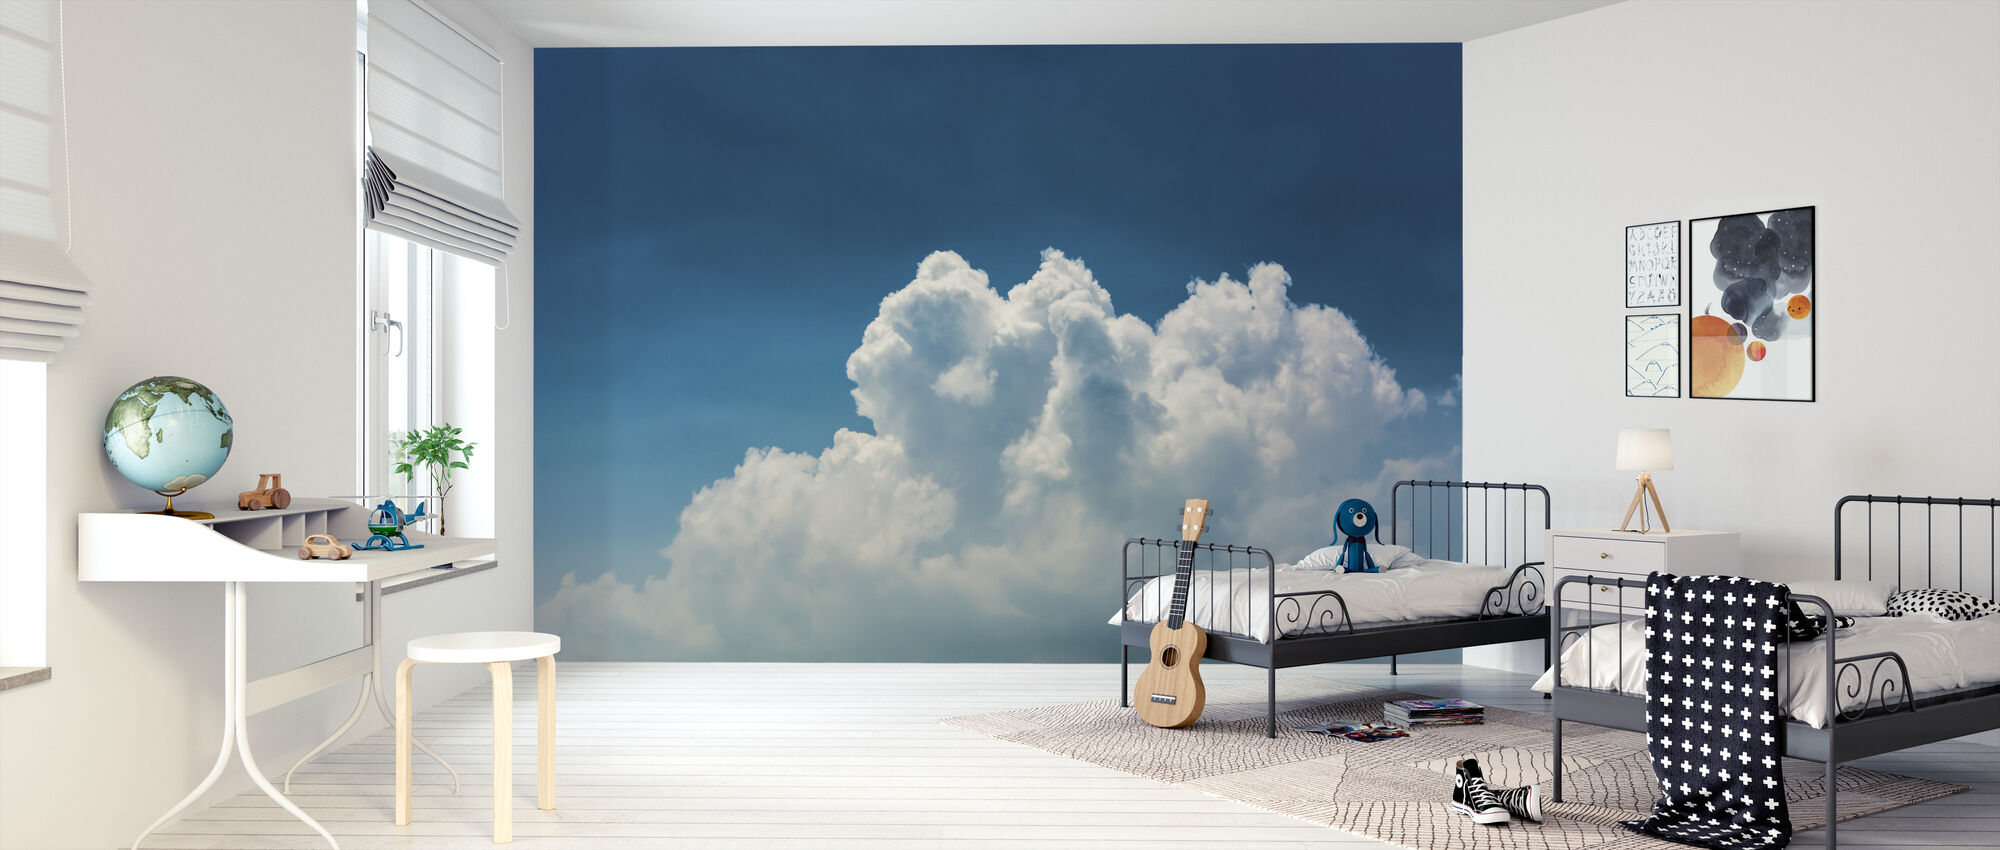 Blue Sky and Clouds - Wallpaper - Kids Room